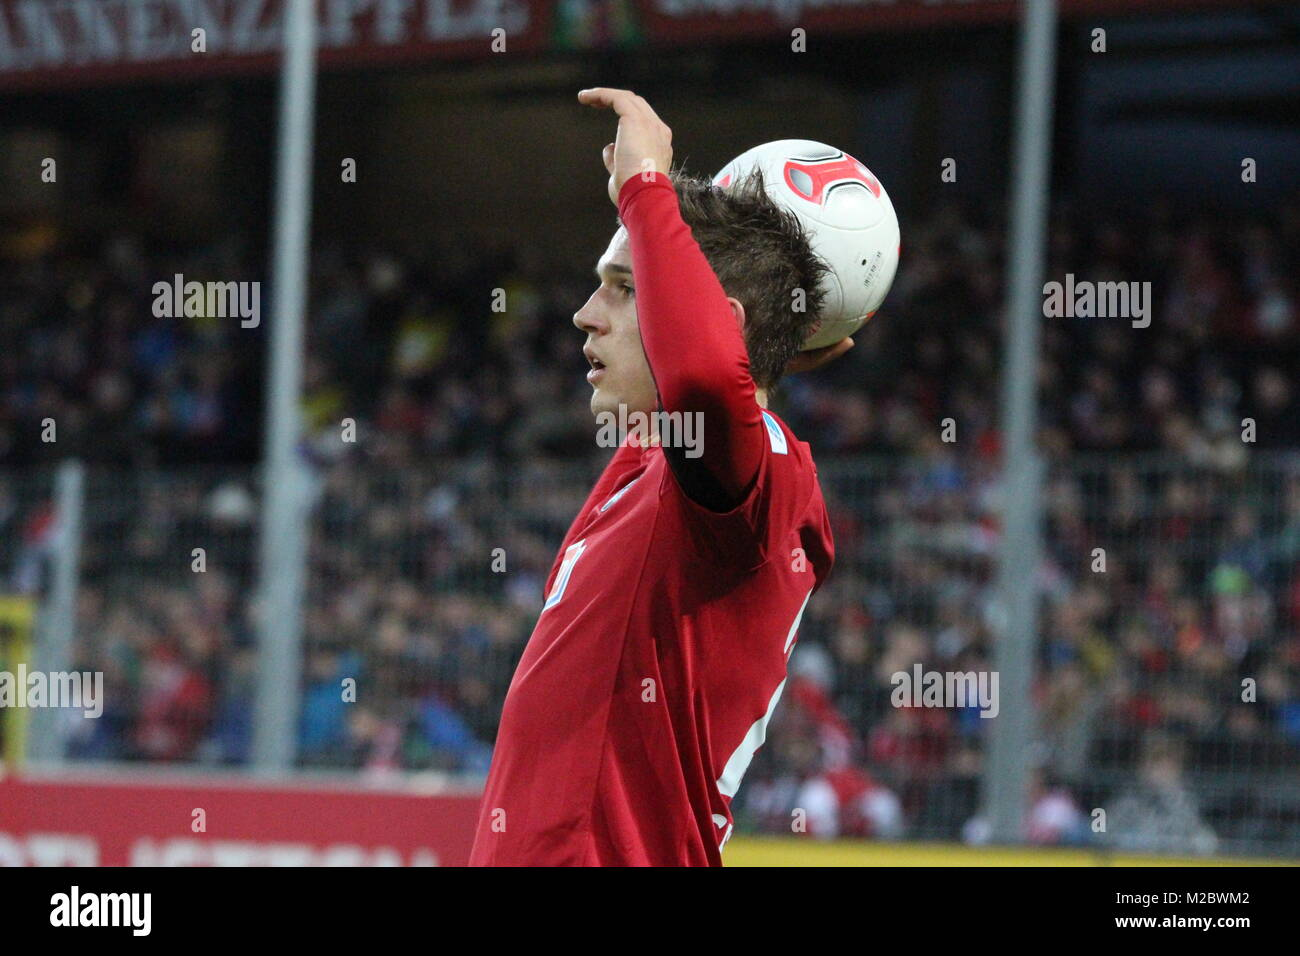 Fußball-Bundesliga Stock Photo